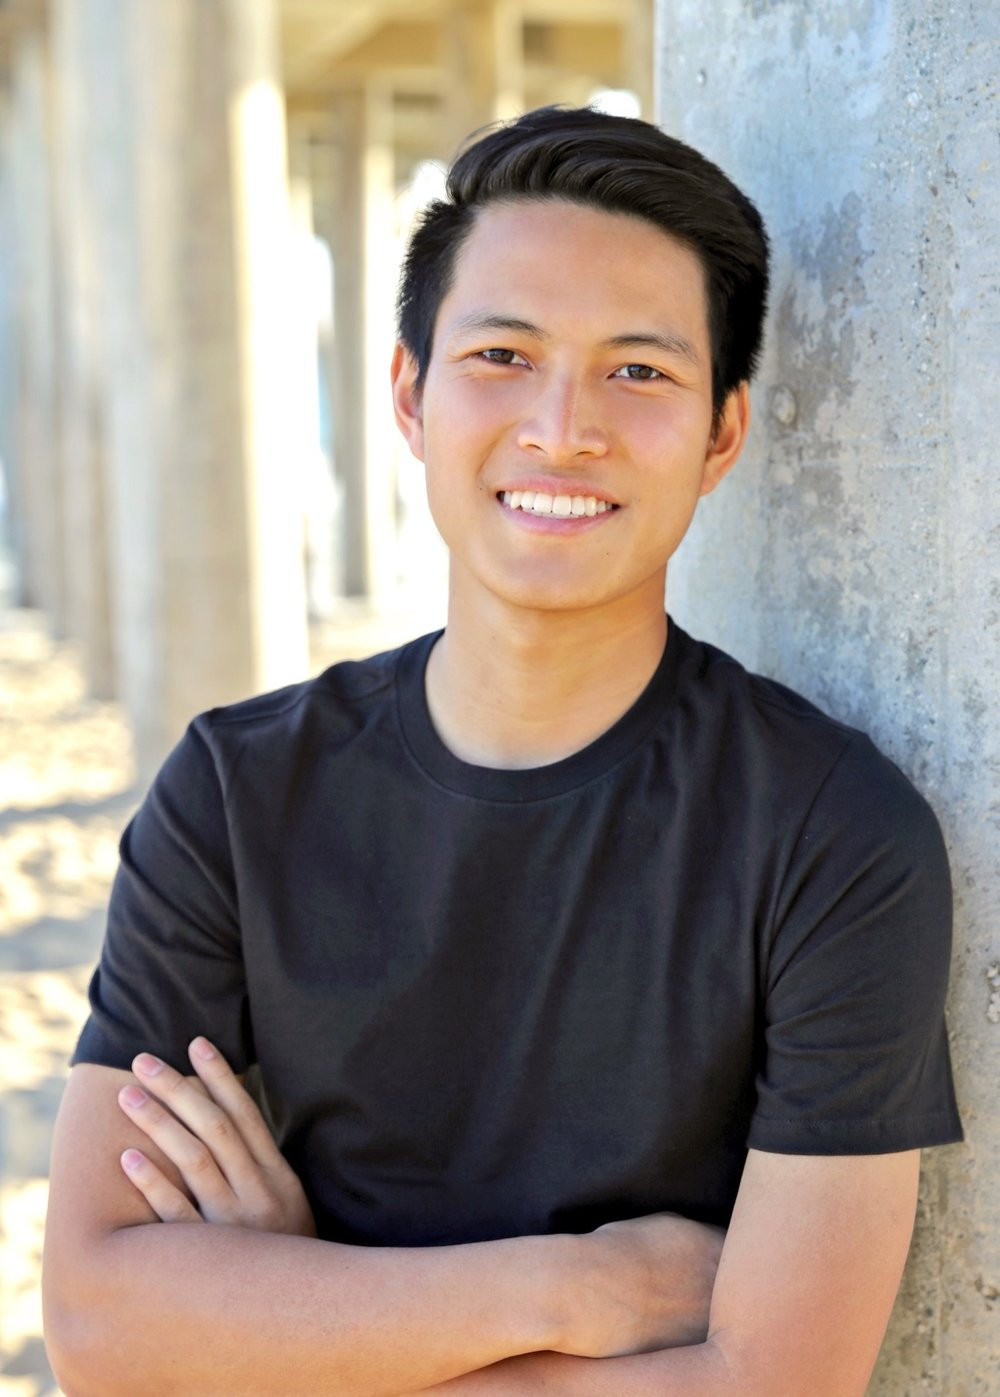 Matt Nguyen Huntington Beach Orange County California